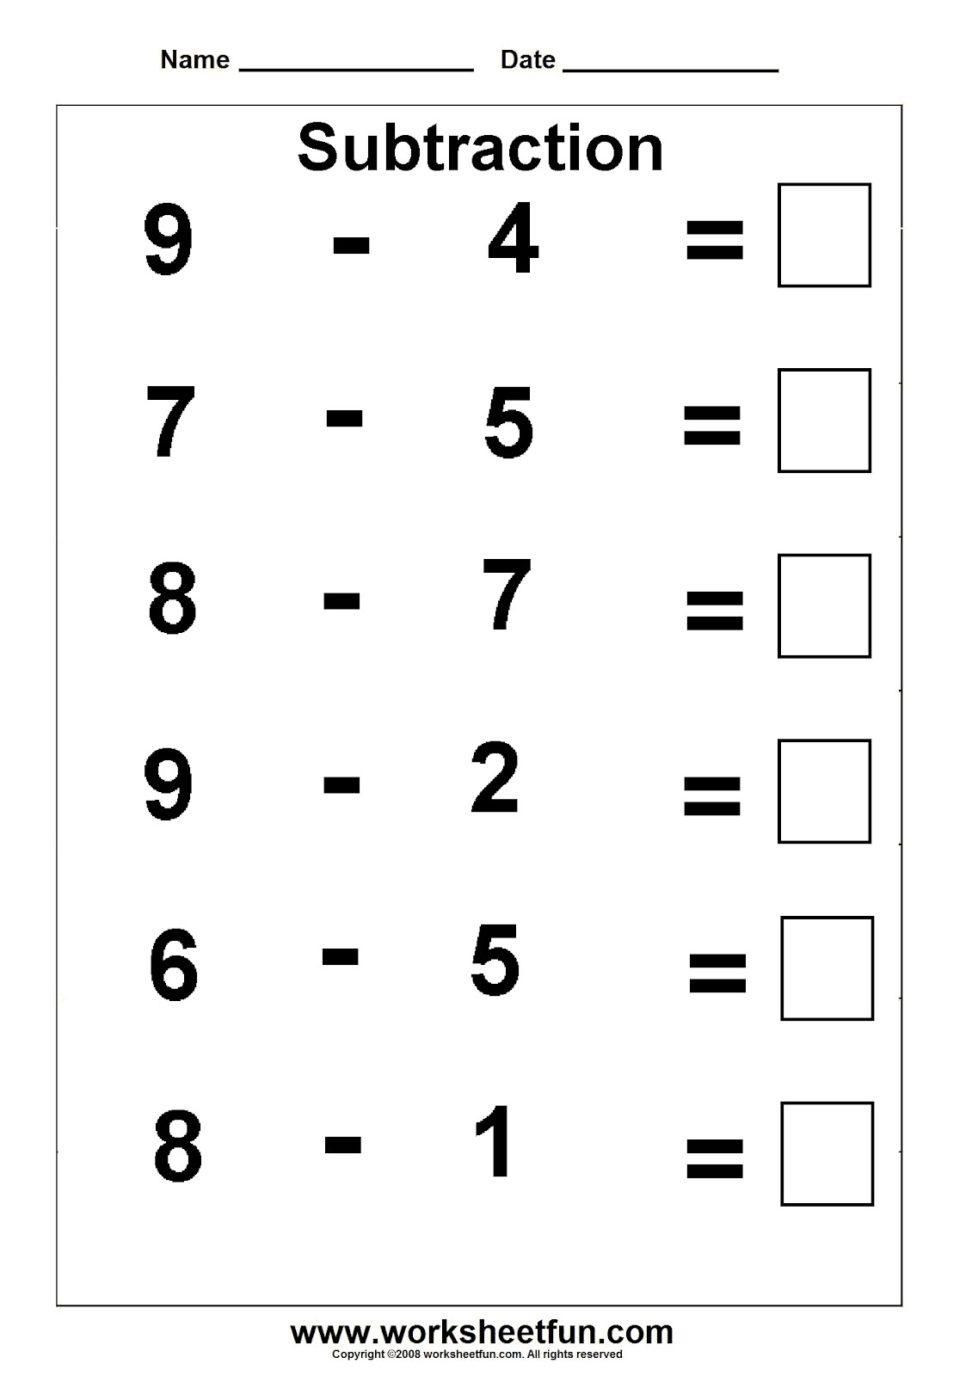 Preschool Math Worksheets Pdf Kindergarten Math Worksheets Pdf to Print Kindergarten Math